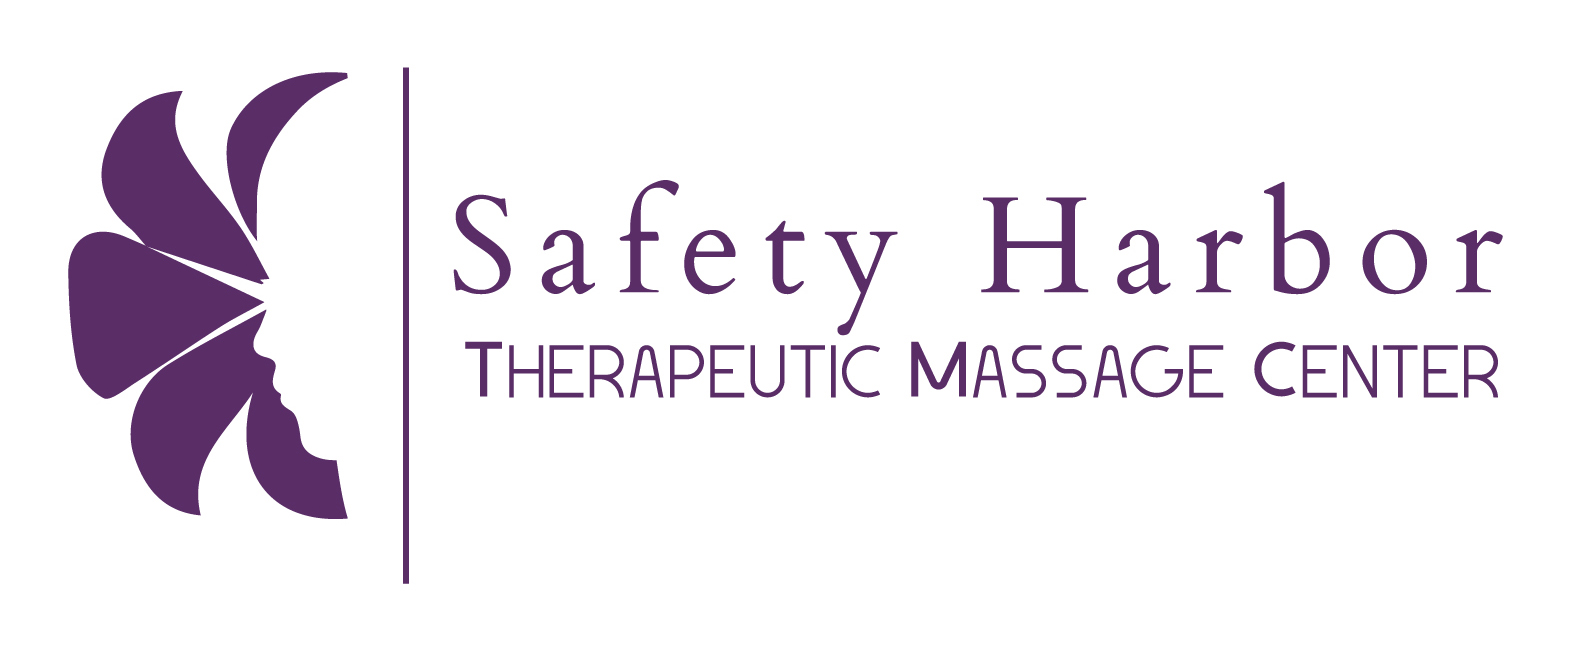 Safety Harbor Therapeutic Massage Center